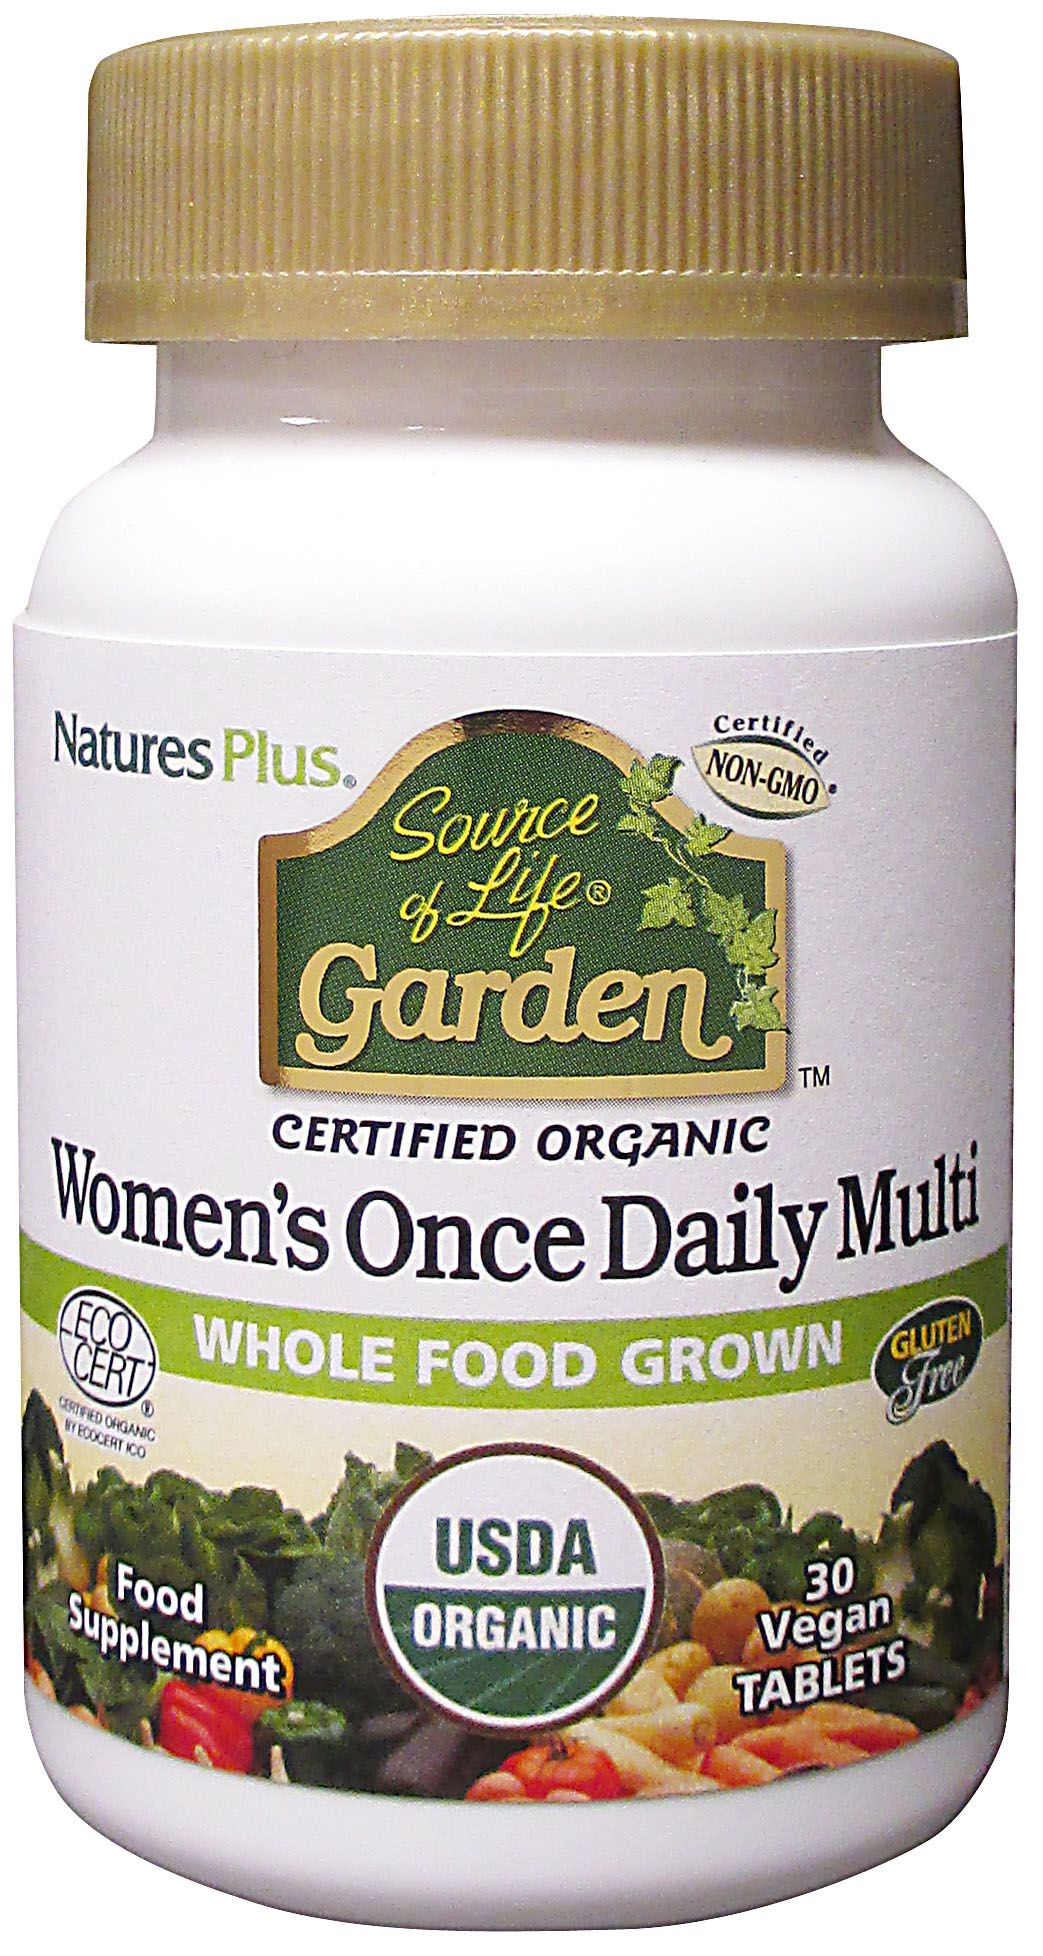 Source of Life Garden Certified Organic Women's Once Daily Multi 30's